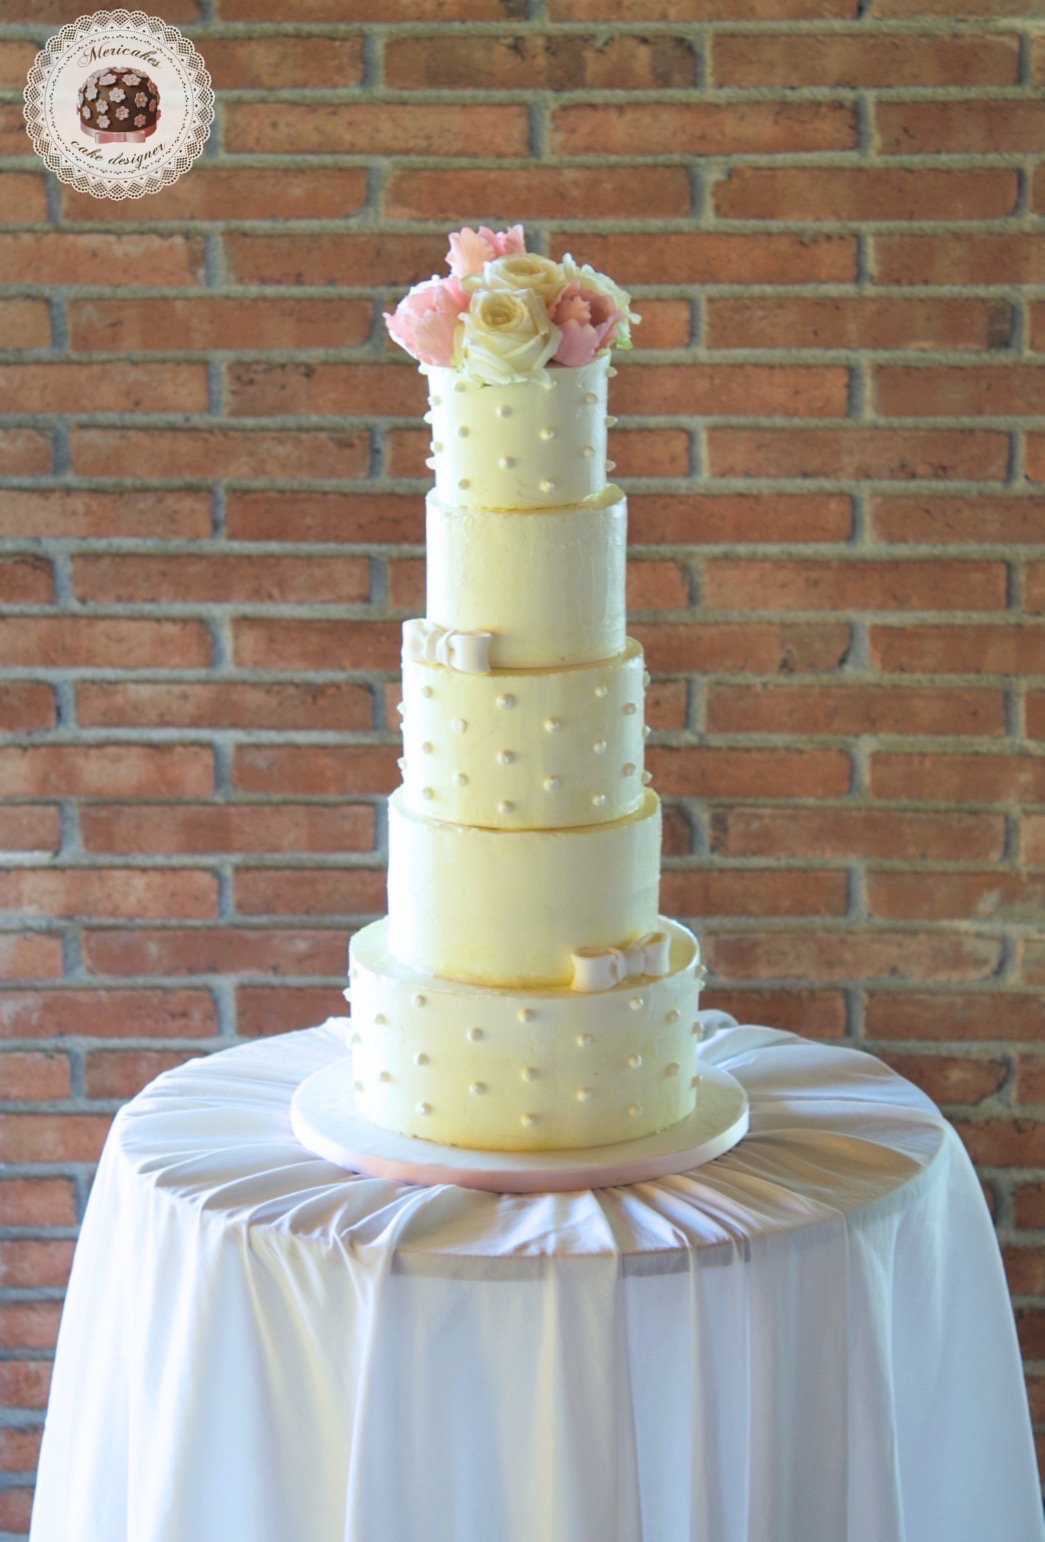 Wedding cake, cream cake, dots, tartas de boda, tortas, mericakes, barcelona, red velvet, roses, tuilps, sugar flowers, pastry, pasteleria creativa, spain wedding, bodas reales. 0